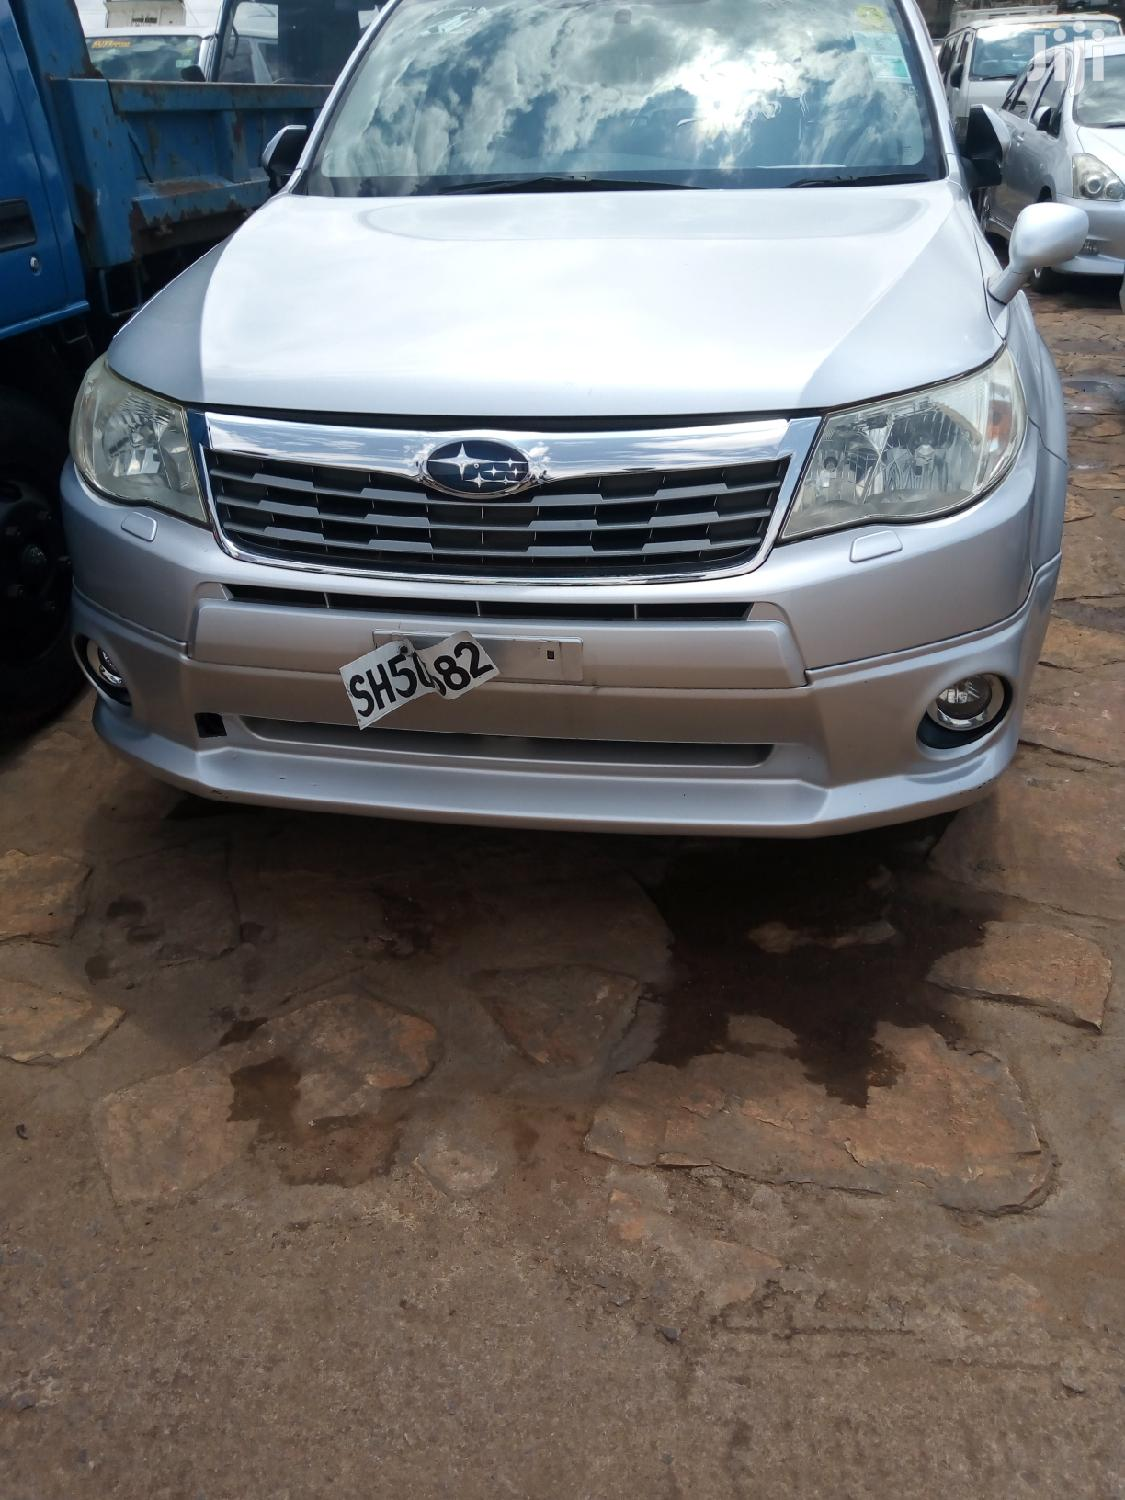 New Subaru Forester 2.0 X Active 2008 Silver